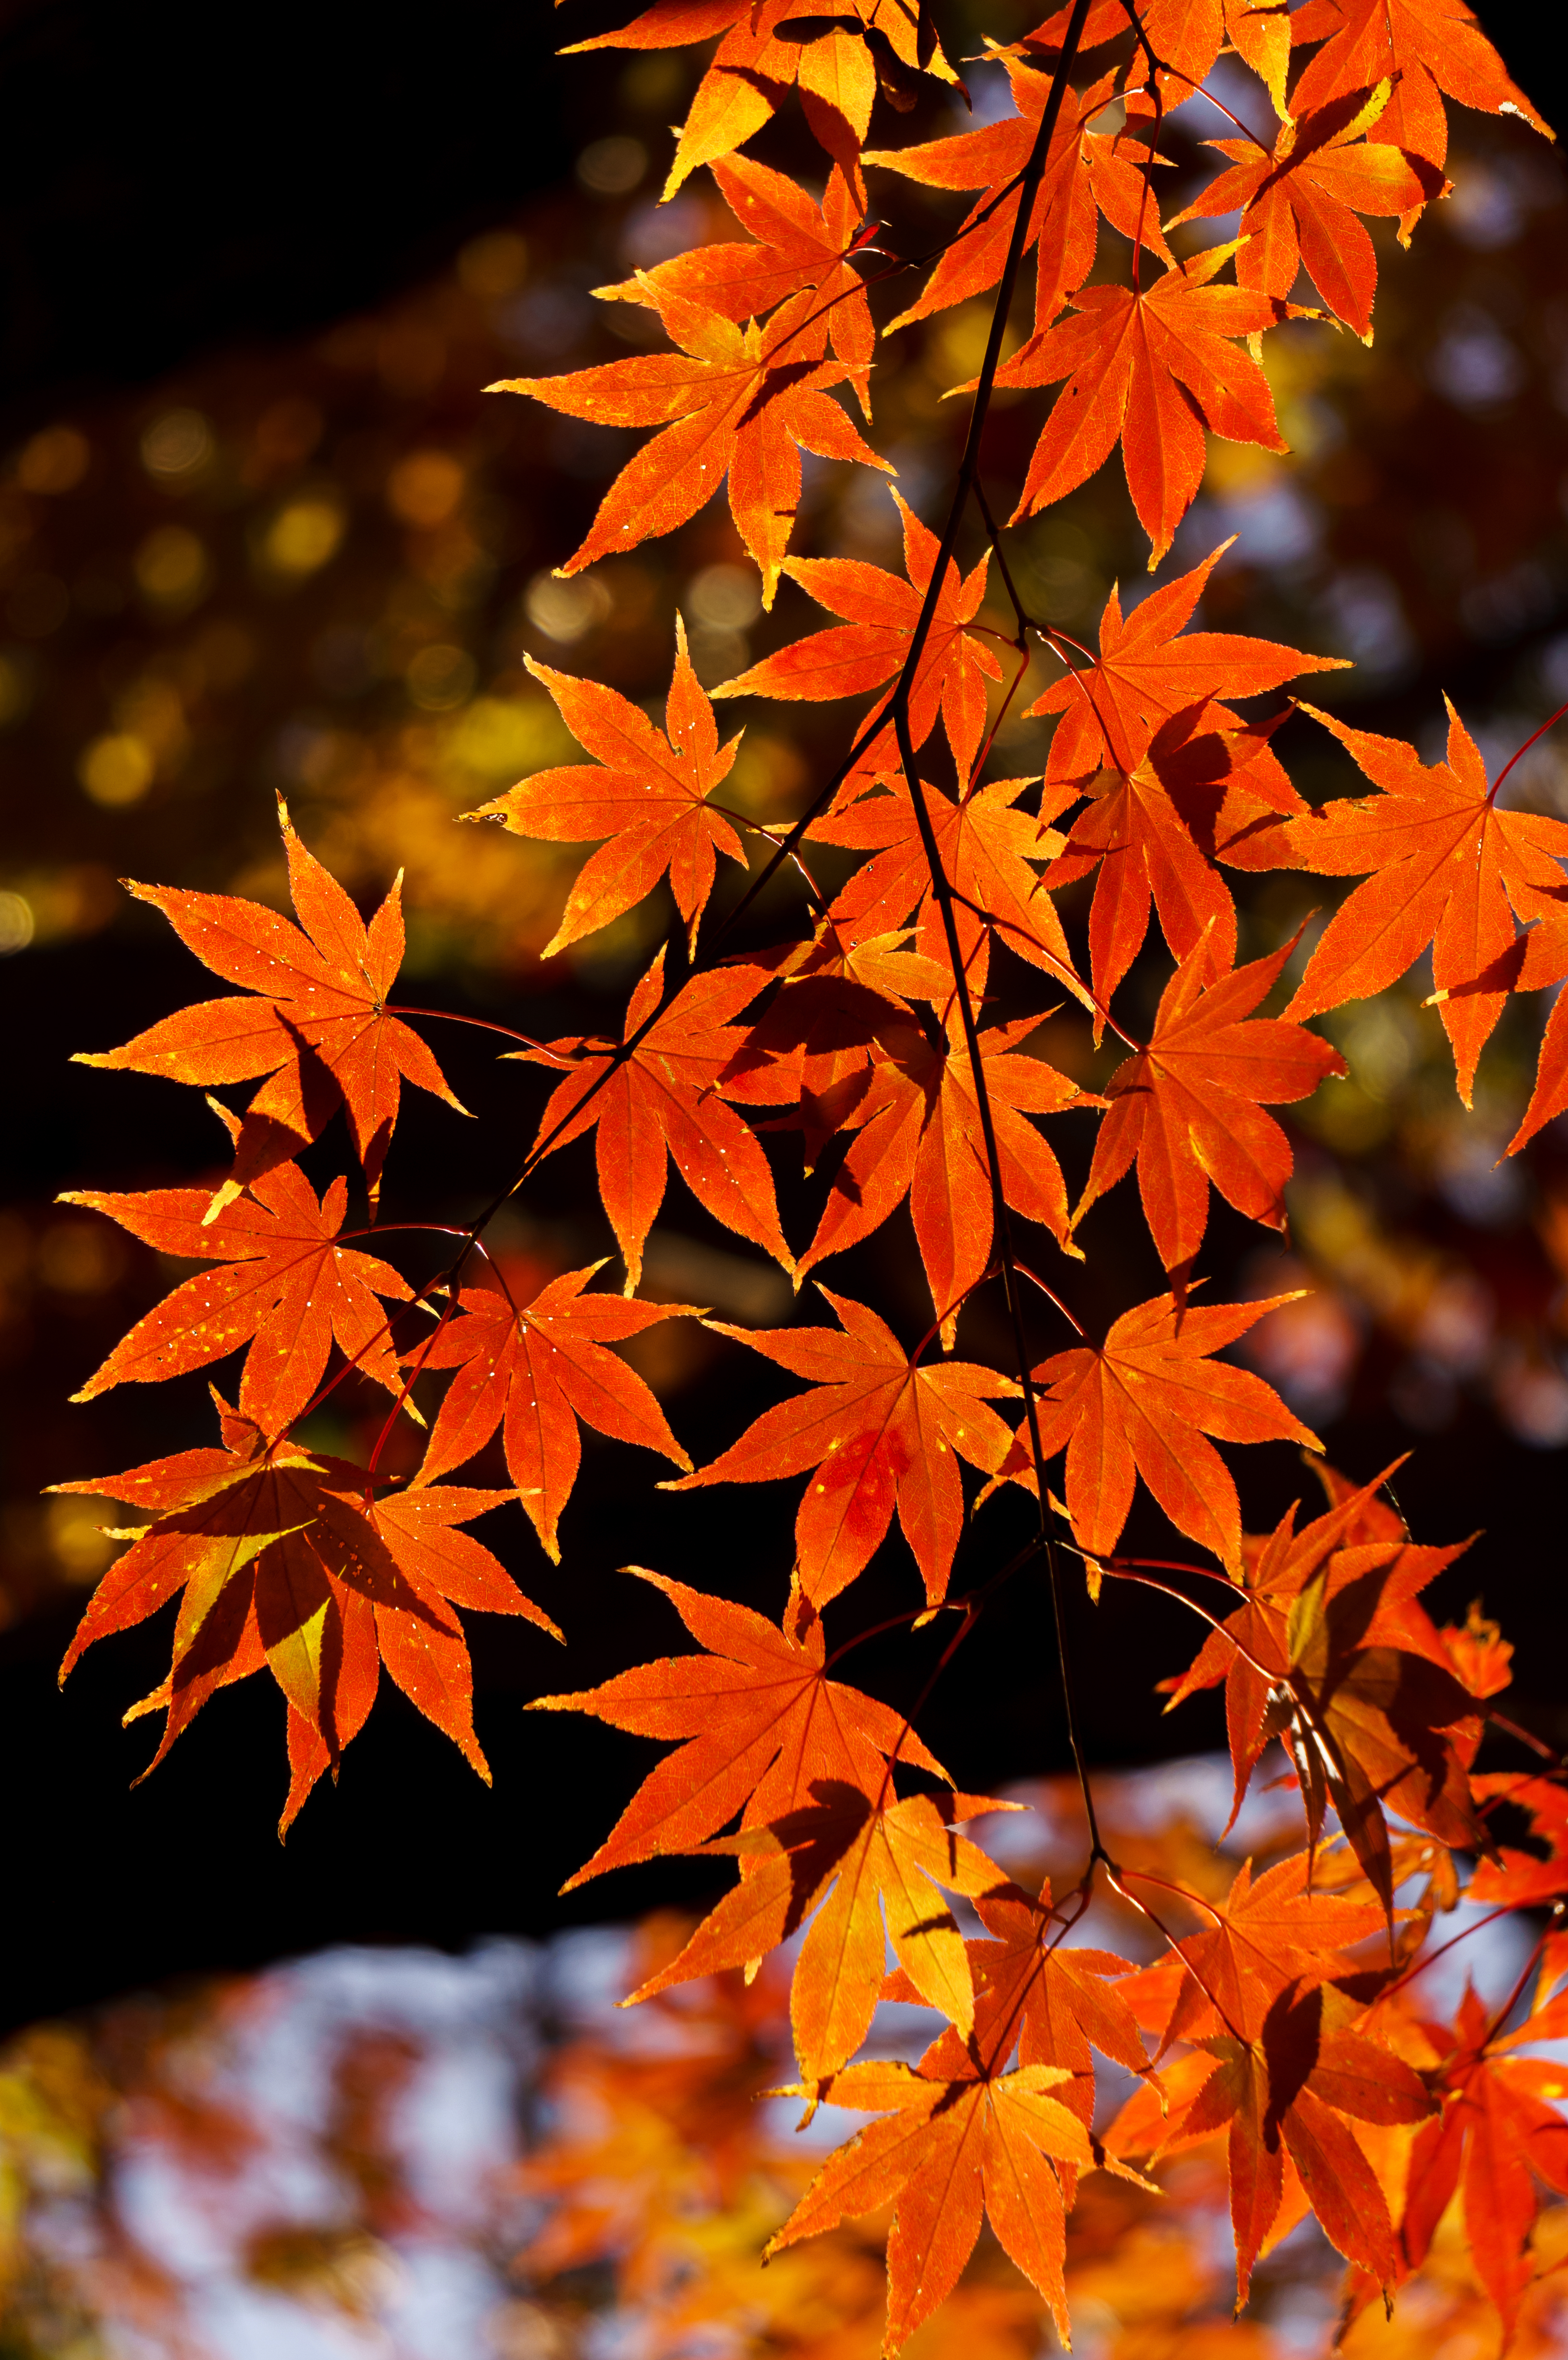 156303 download wallpaper Leaves, Nature, Autumn, Branch, Maple screensavers and pictures for free